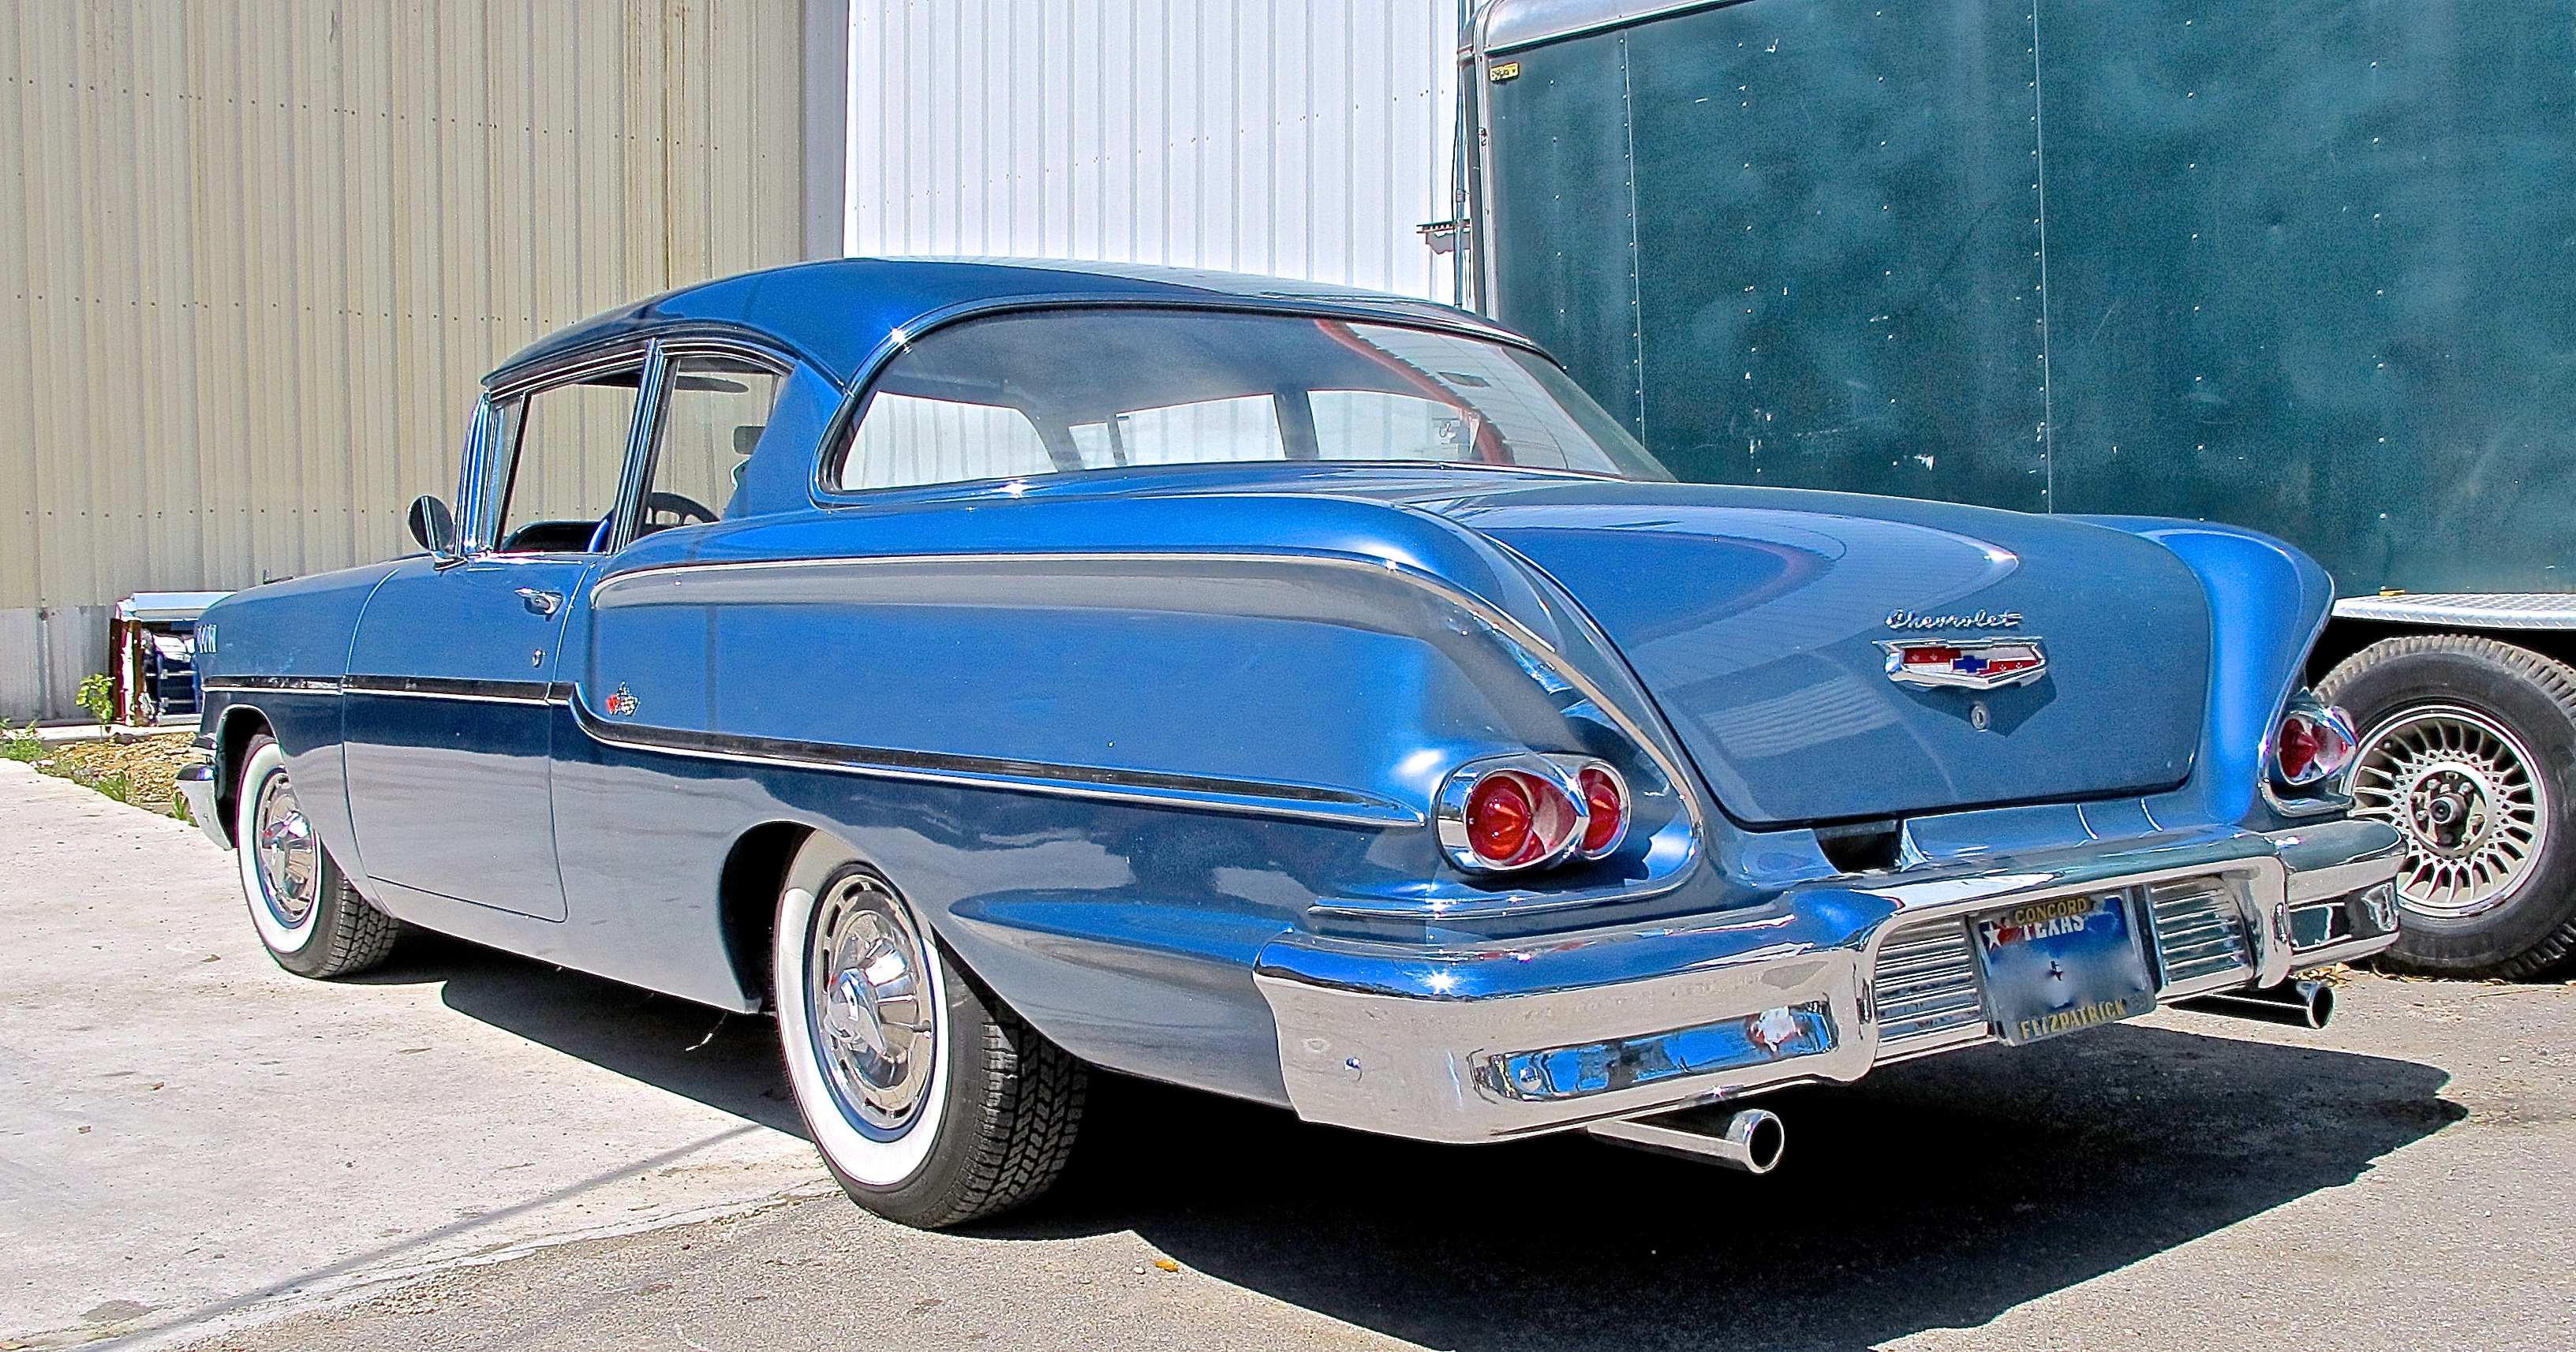 car texas pictures convertible atx real austin n chevrolet in